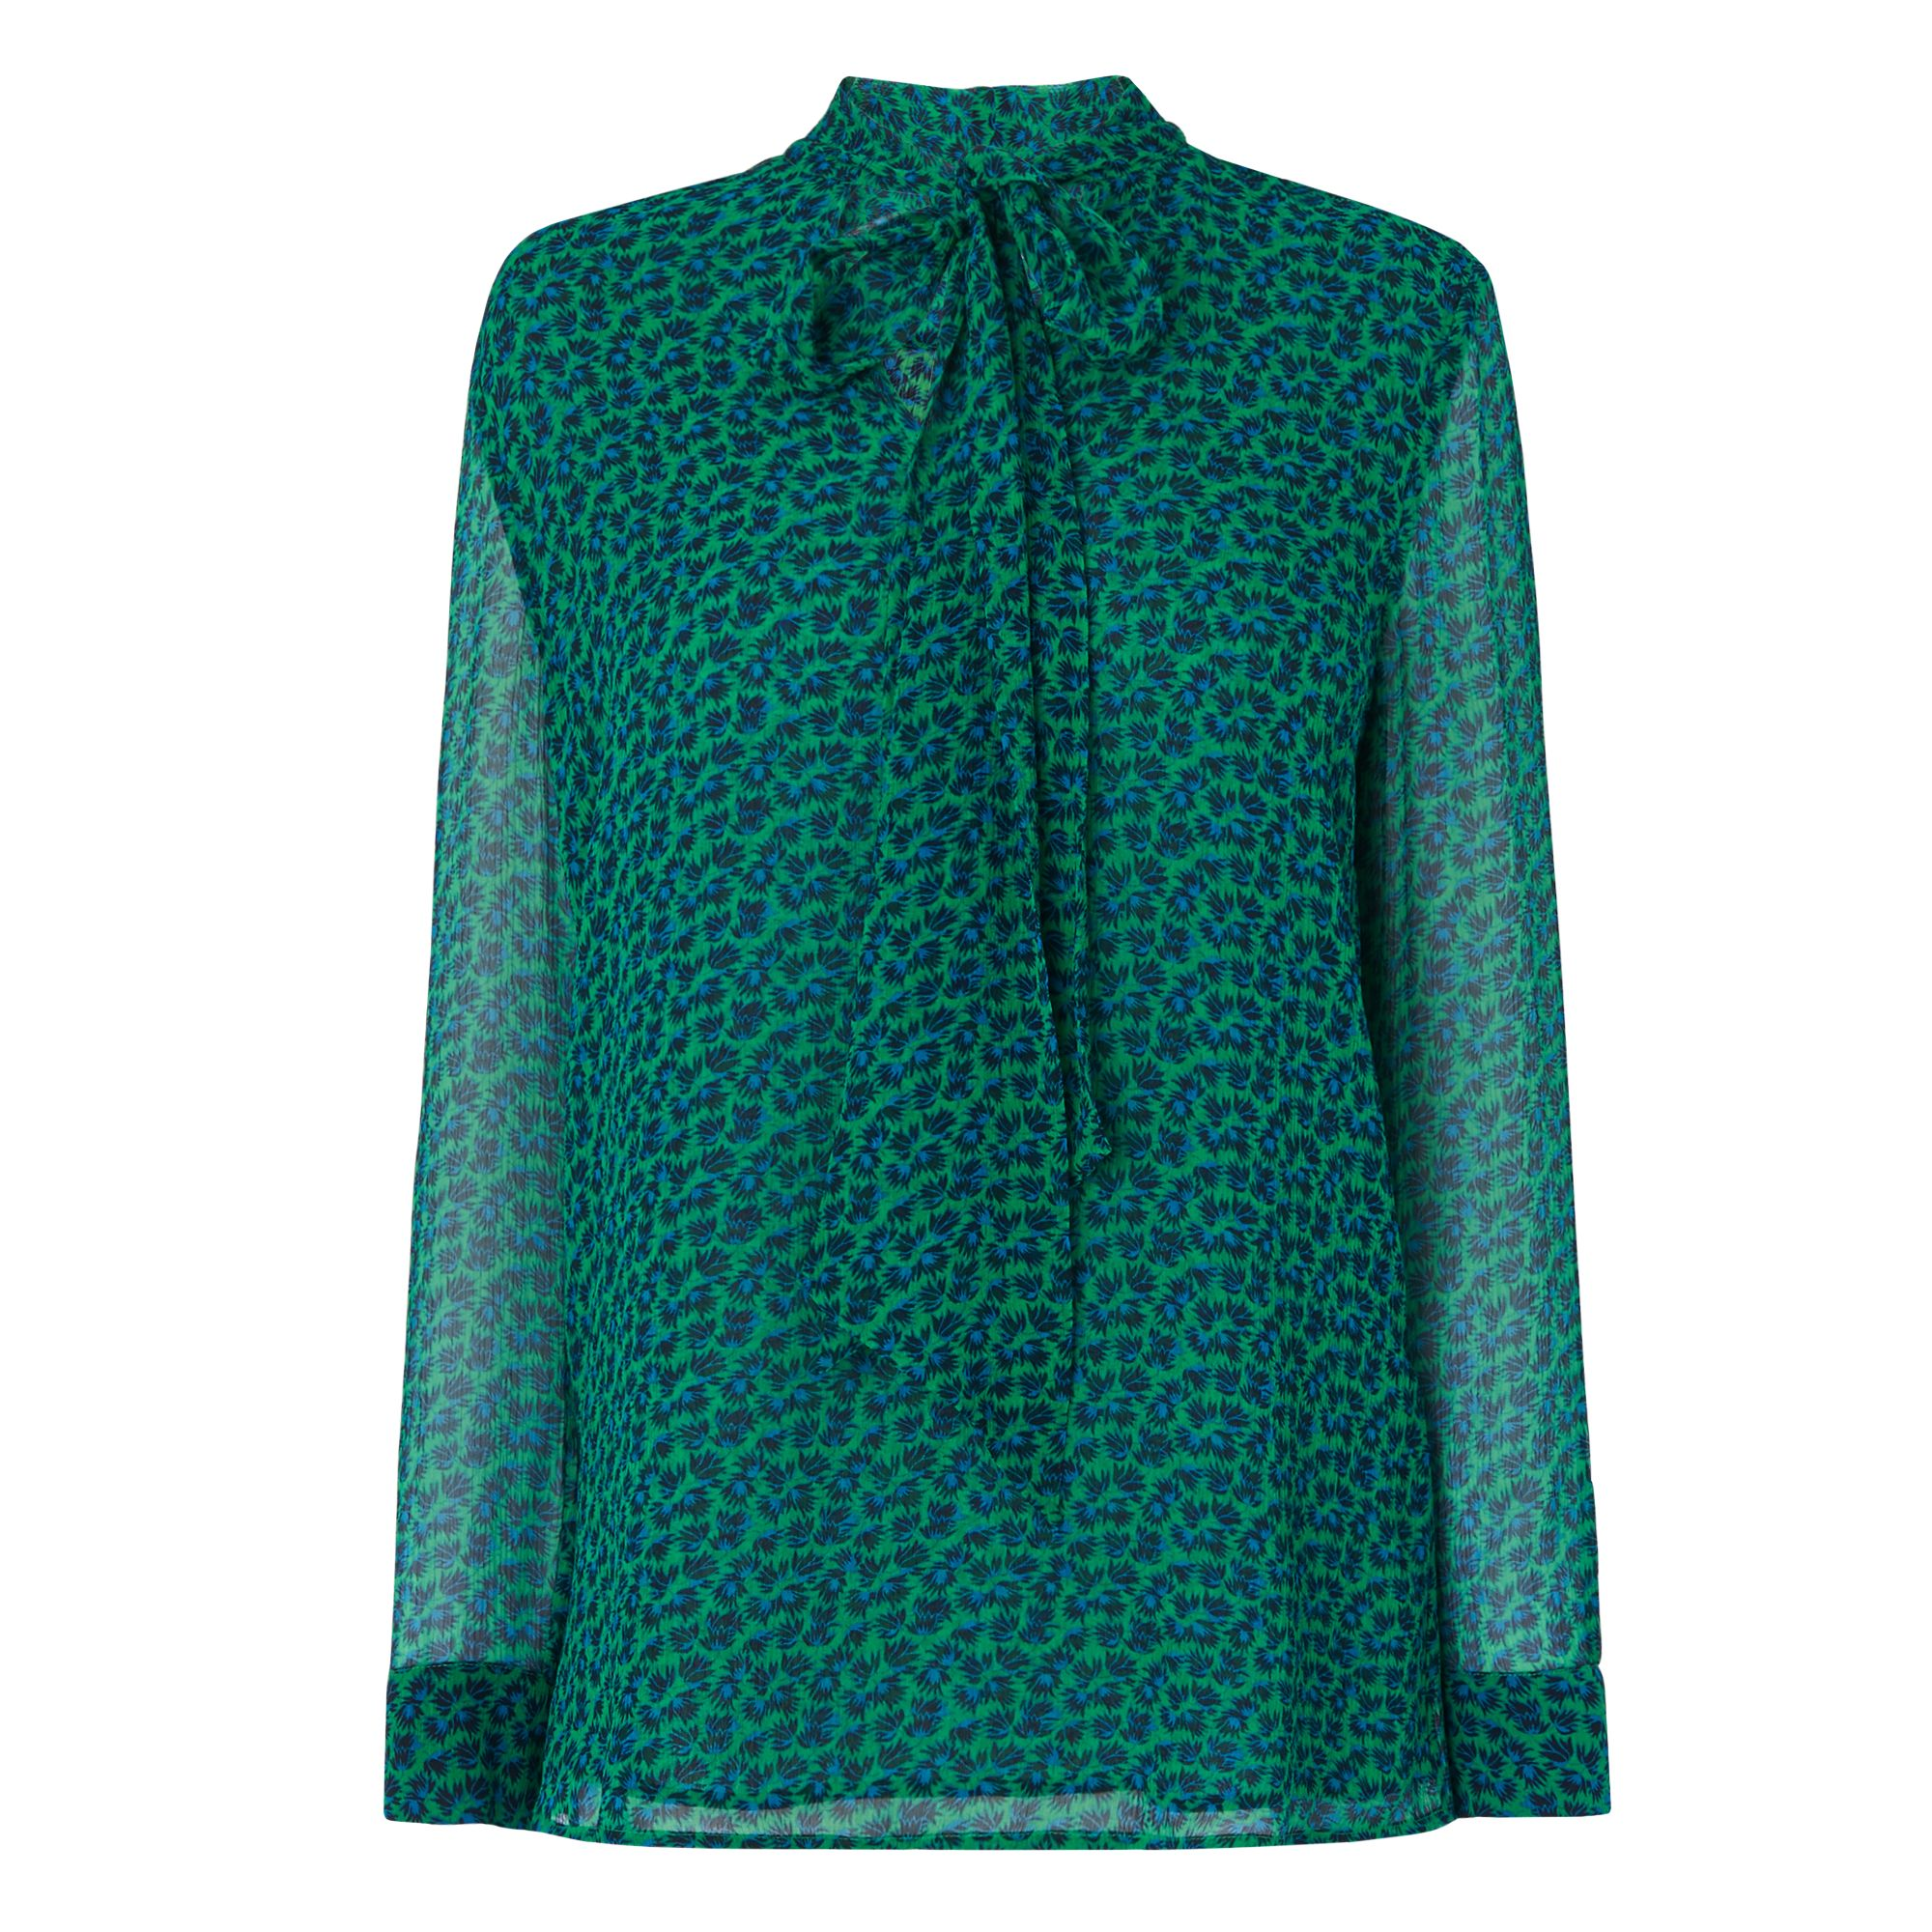 L.K. Bennett Rudy Printed Blouse Woven Top, Green